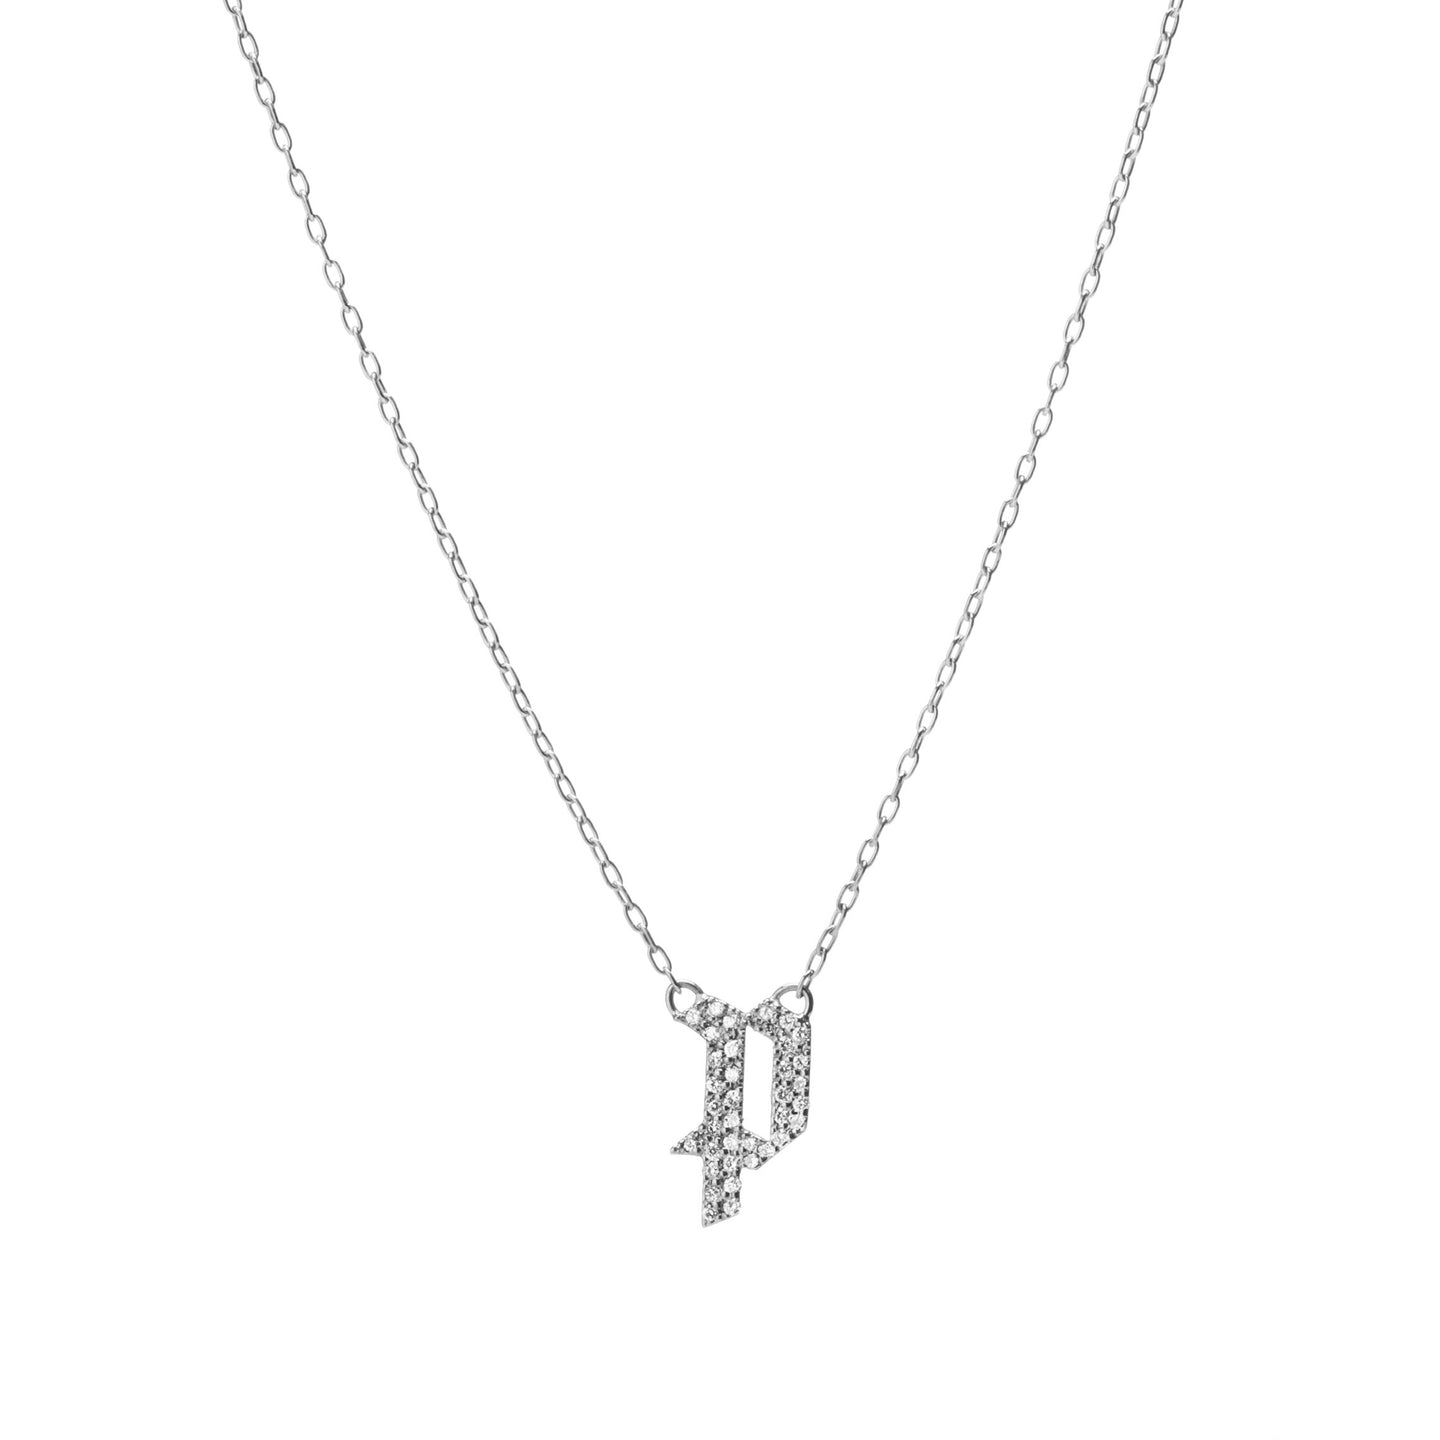 Small Gothic Letter Pendant with Pave White Diamonds